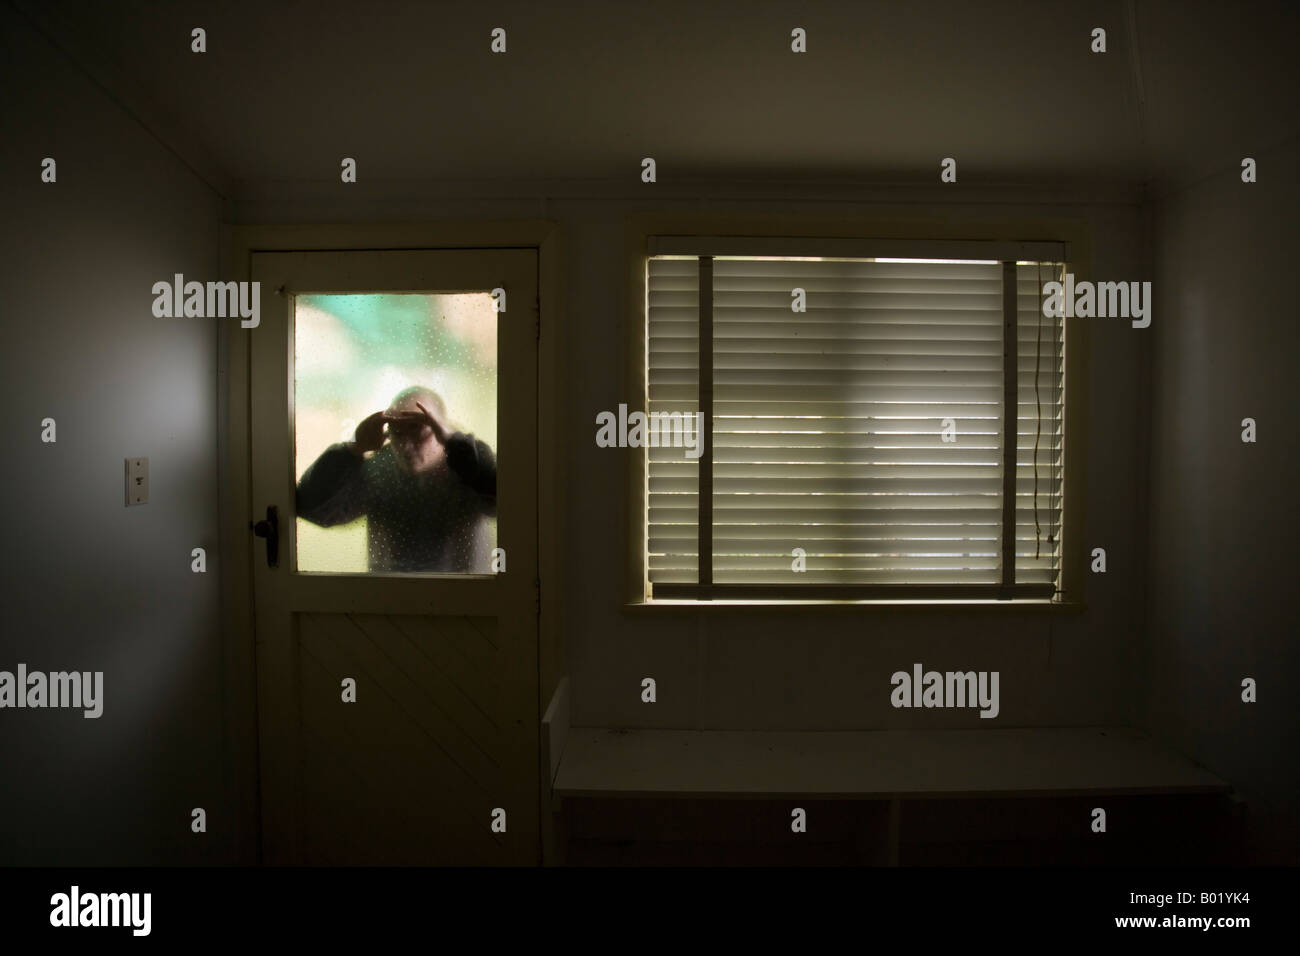 man-looks-into-room-through-frosted-glas